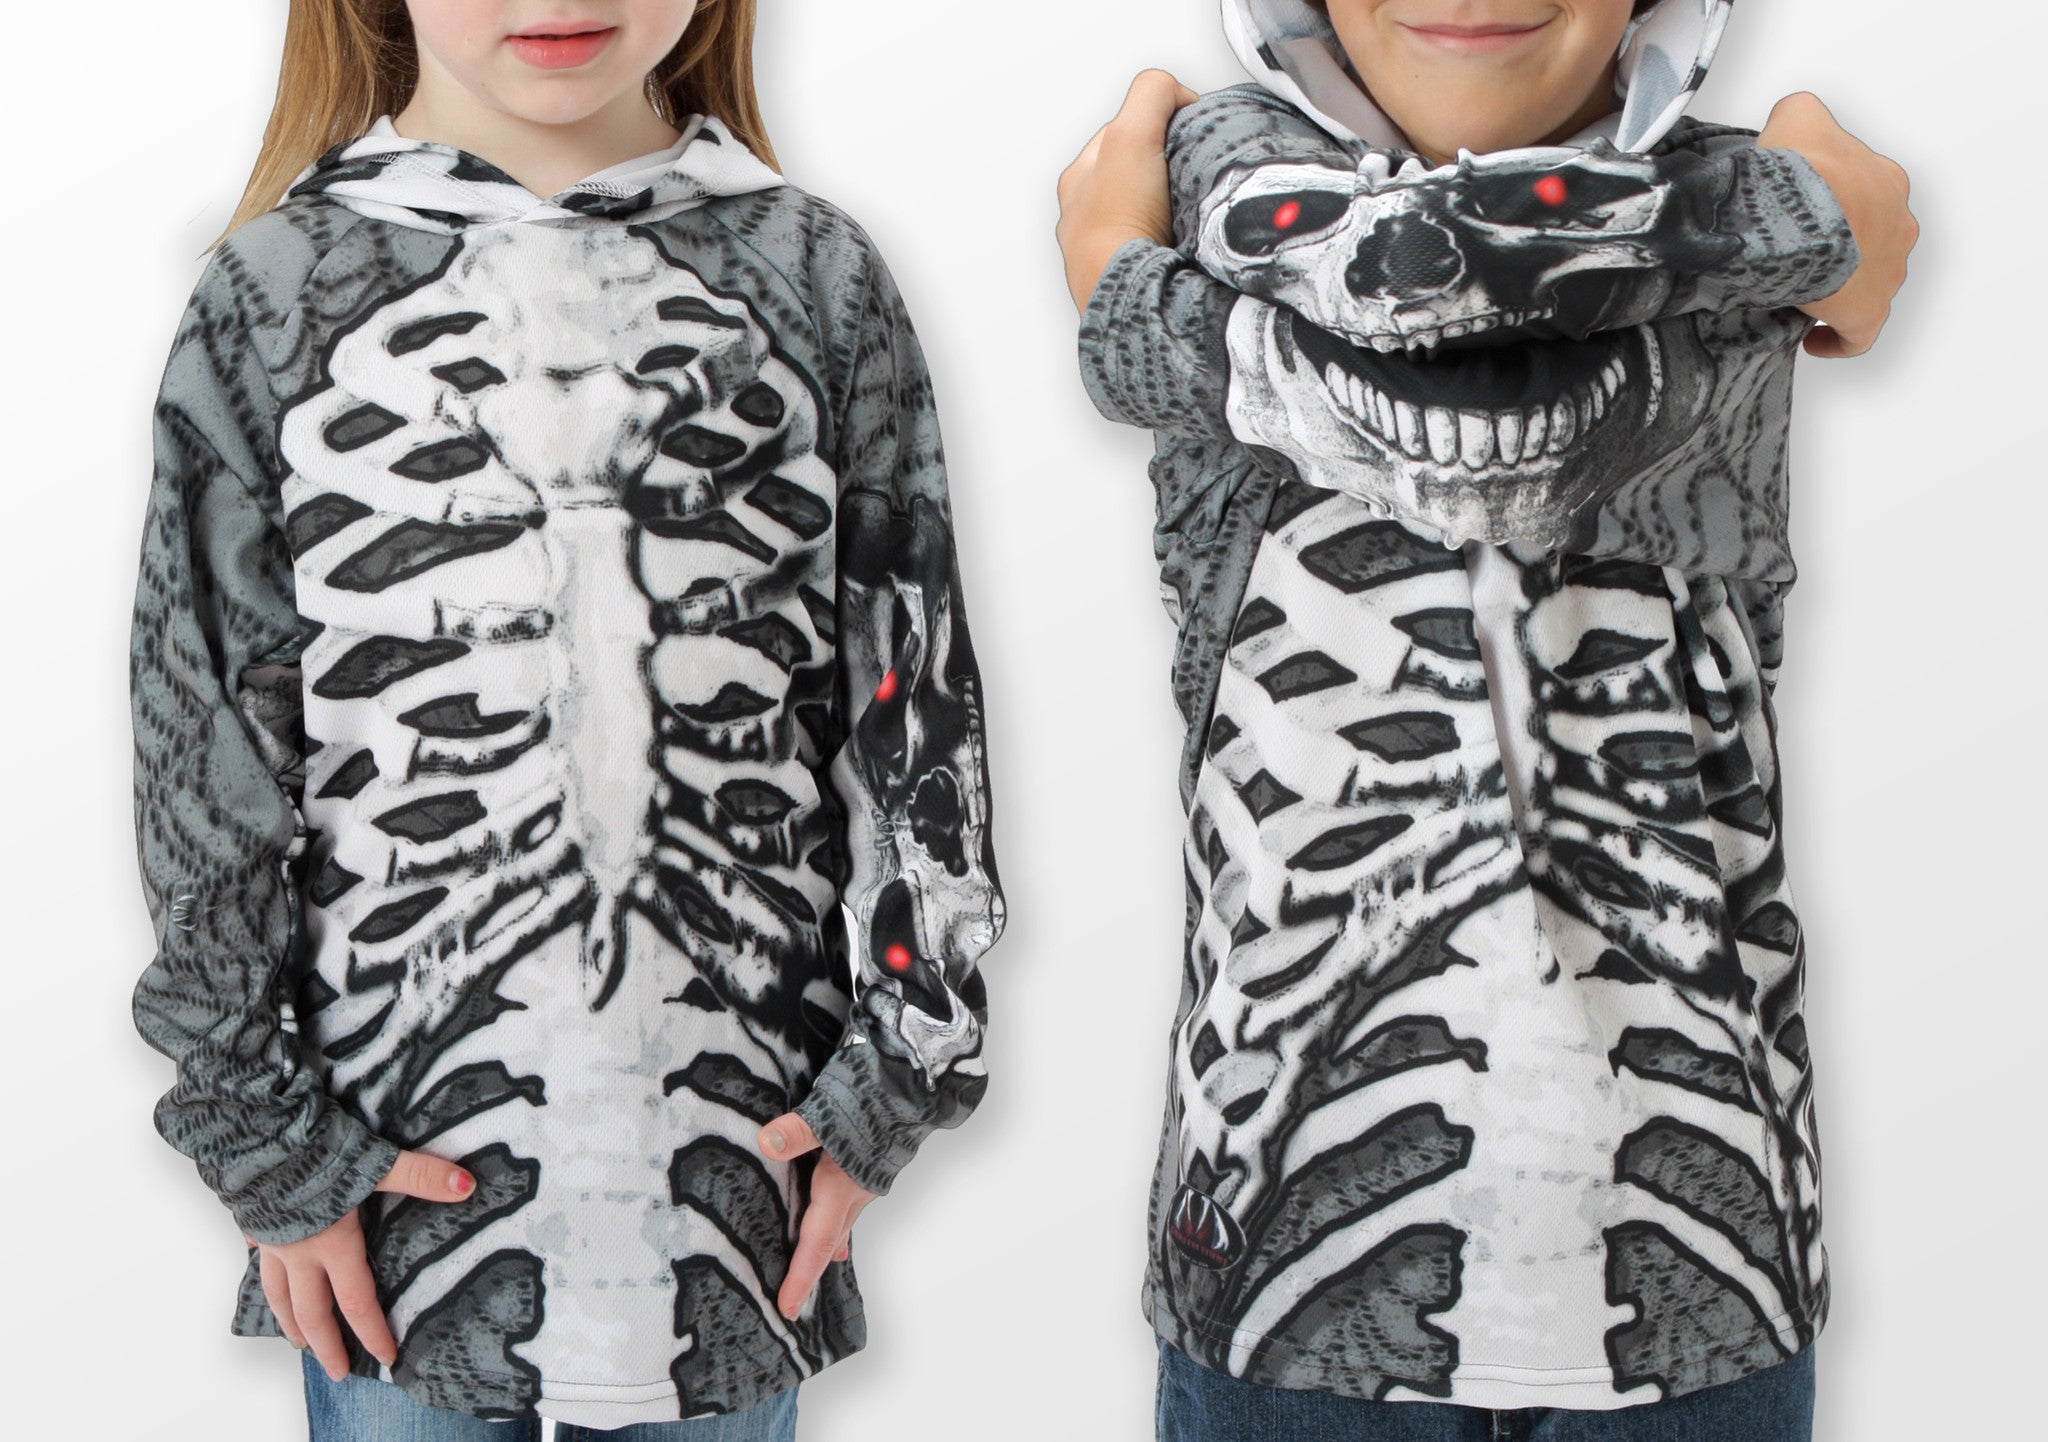 grey and white skeleton hoodie shirt showing mouth on sleeves